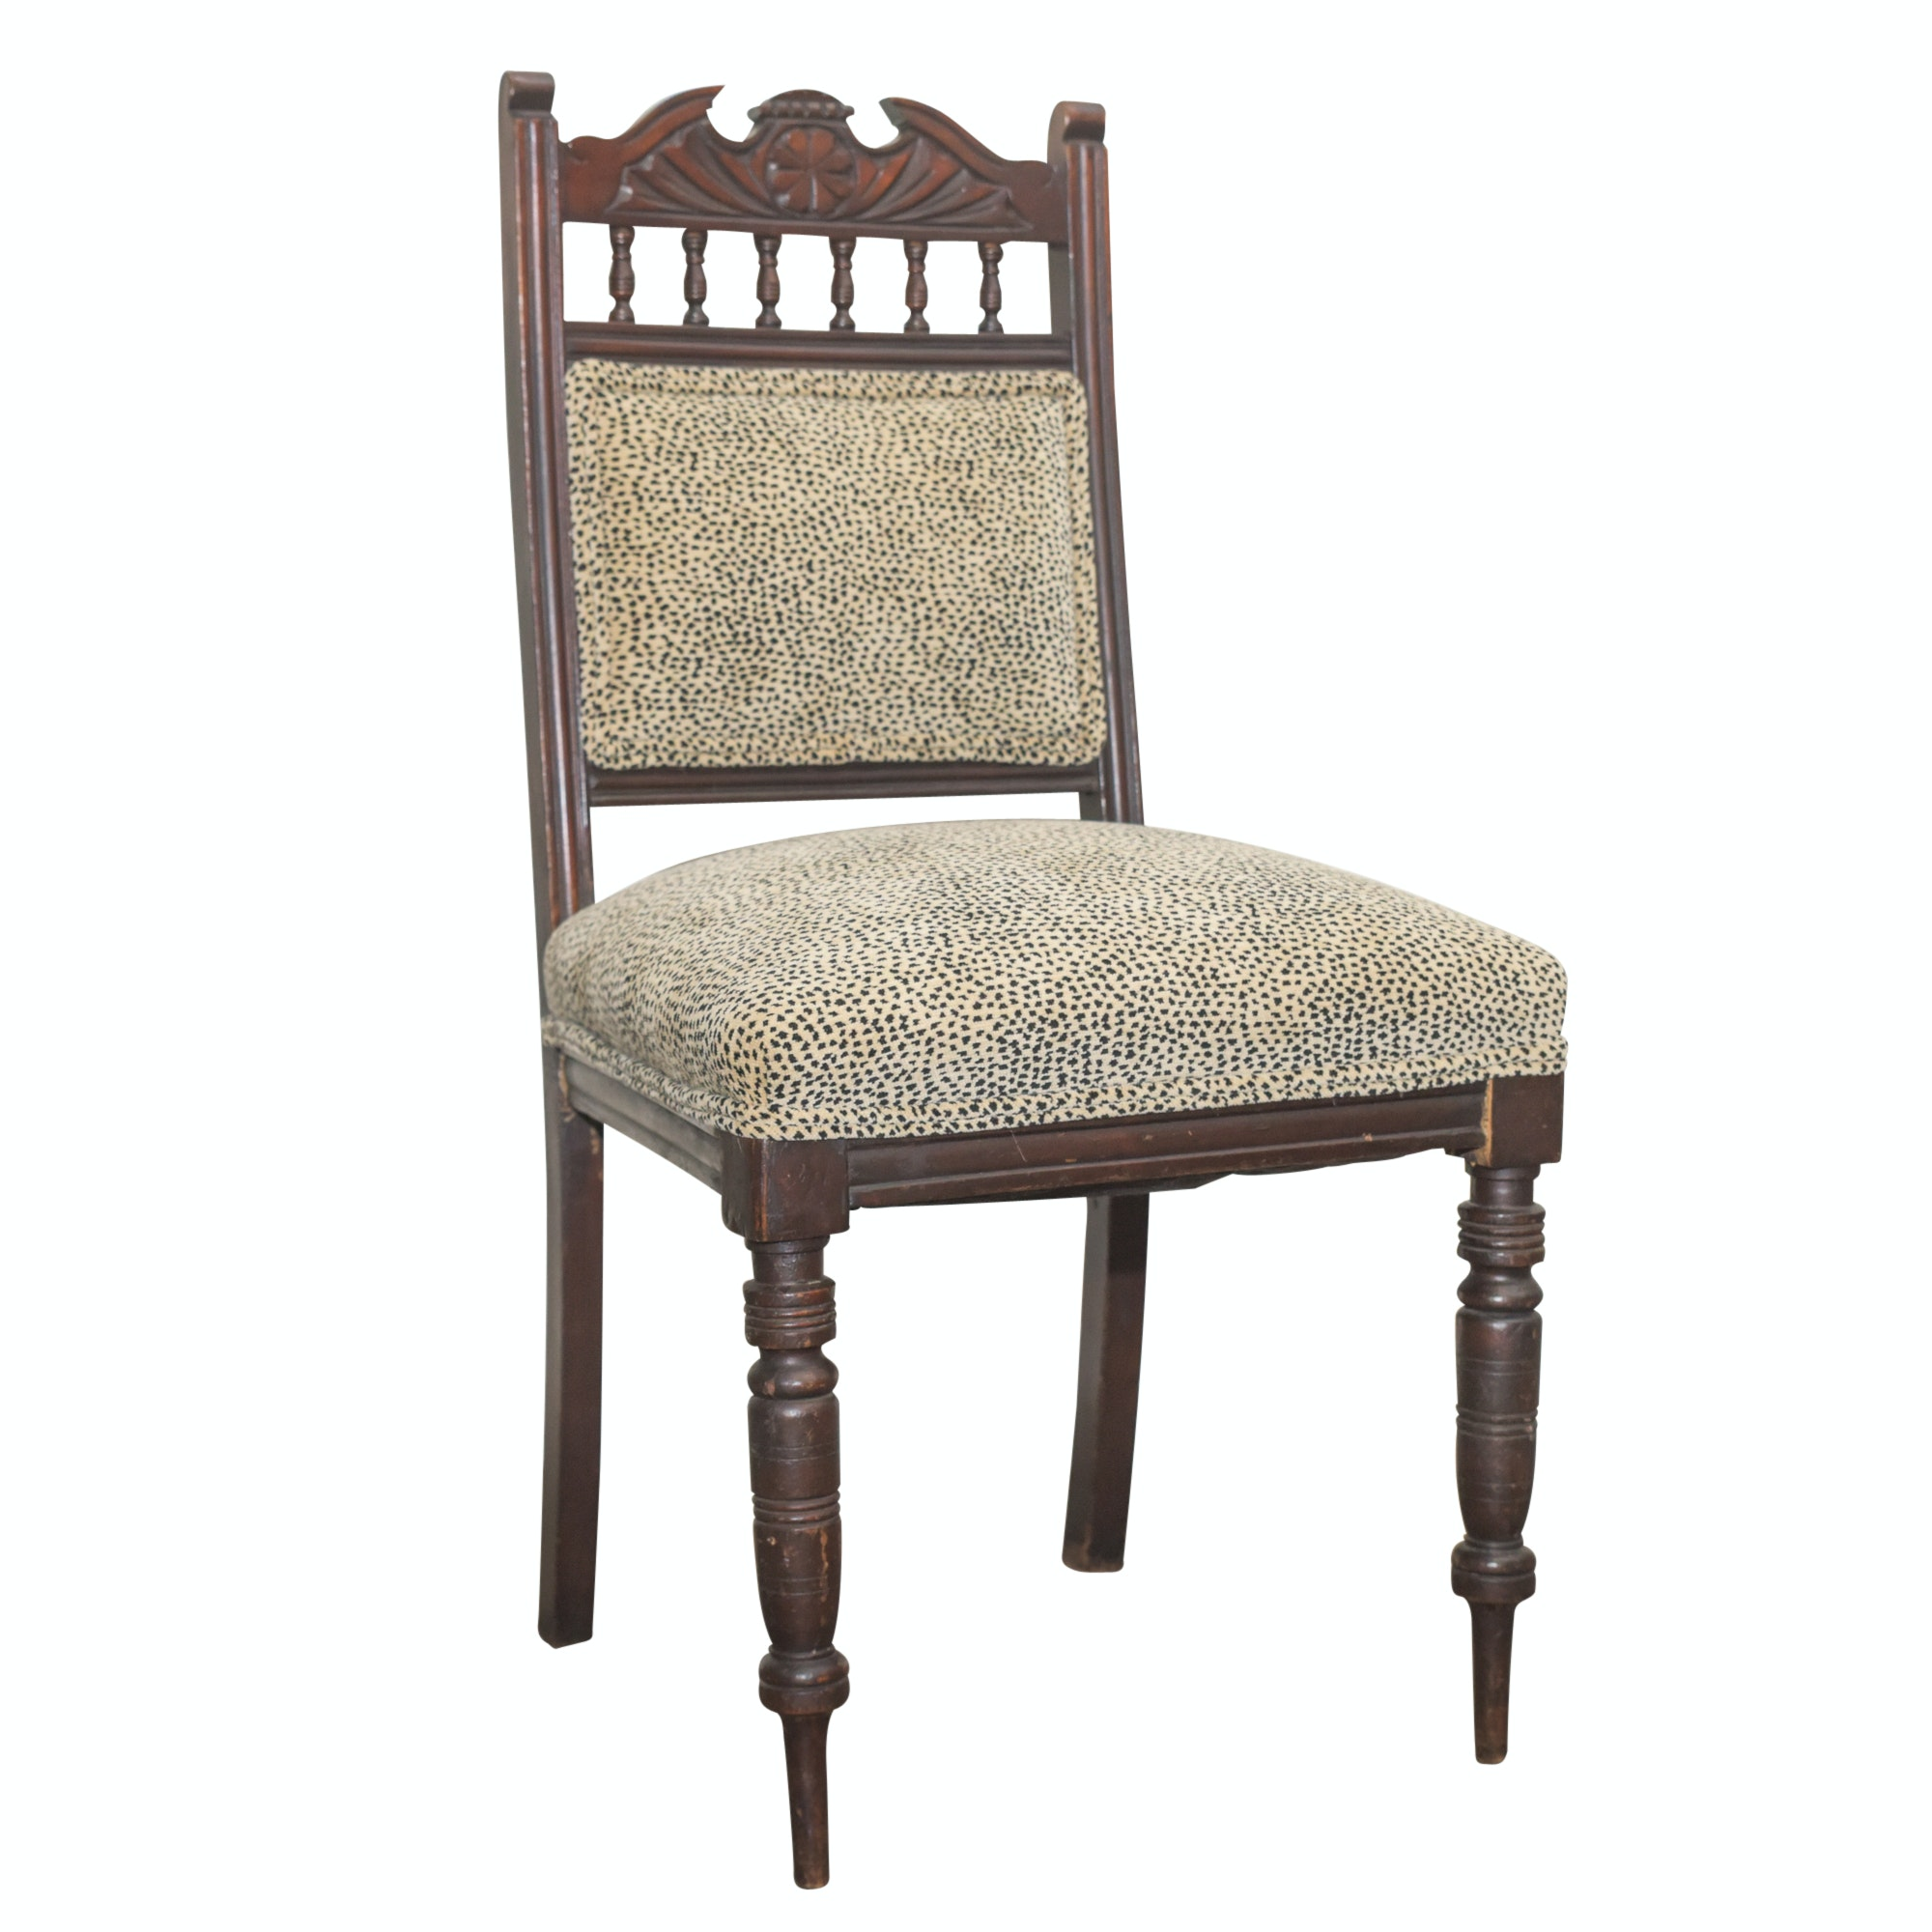 Eastlake Style Side Chair with Leopard Upholstery